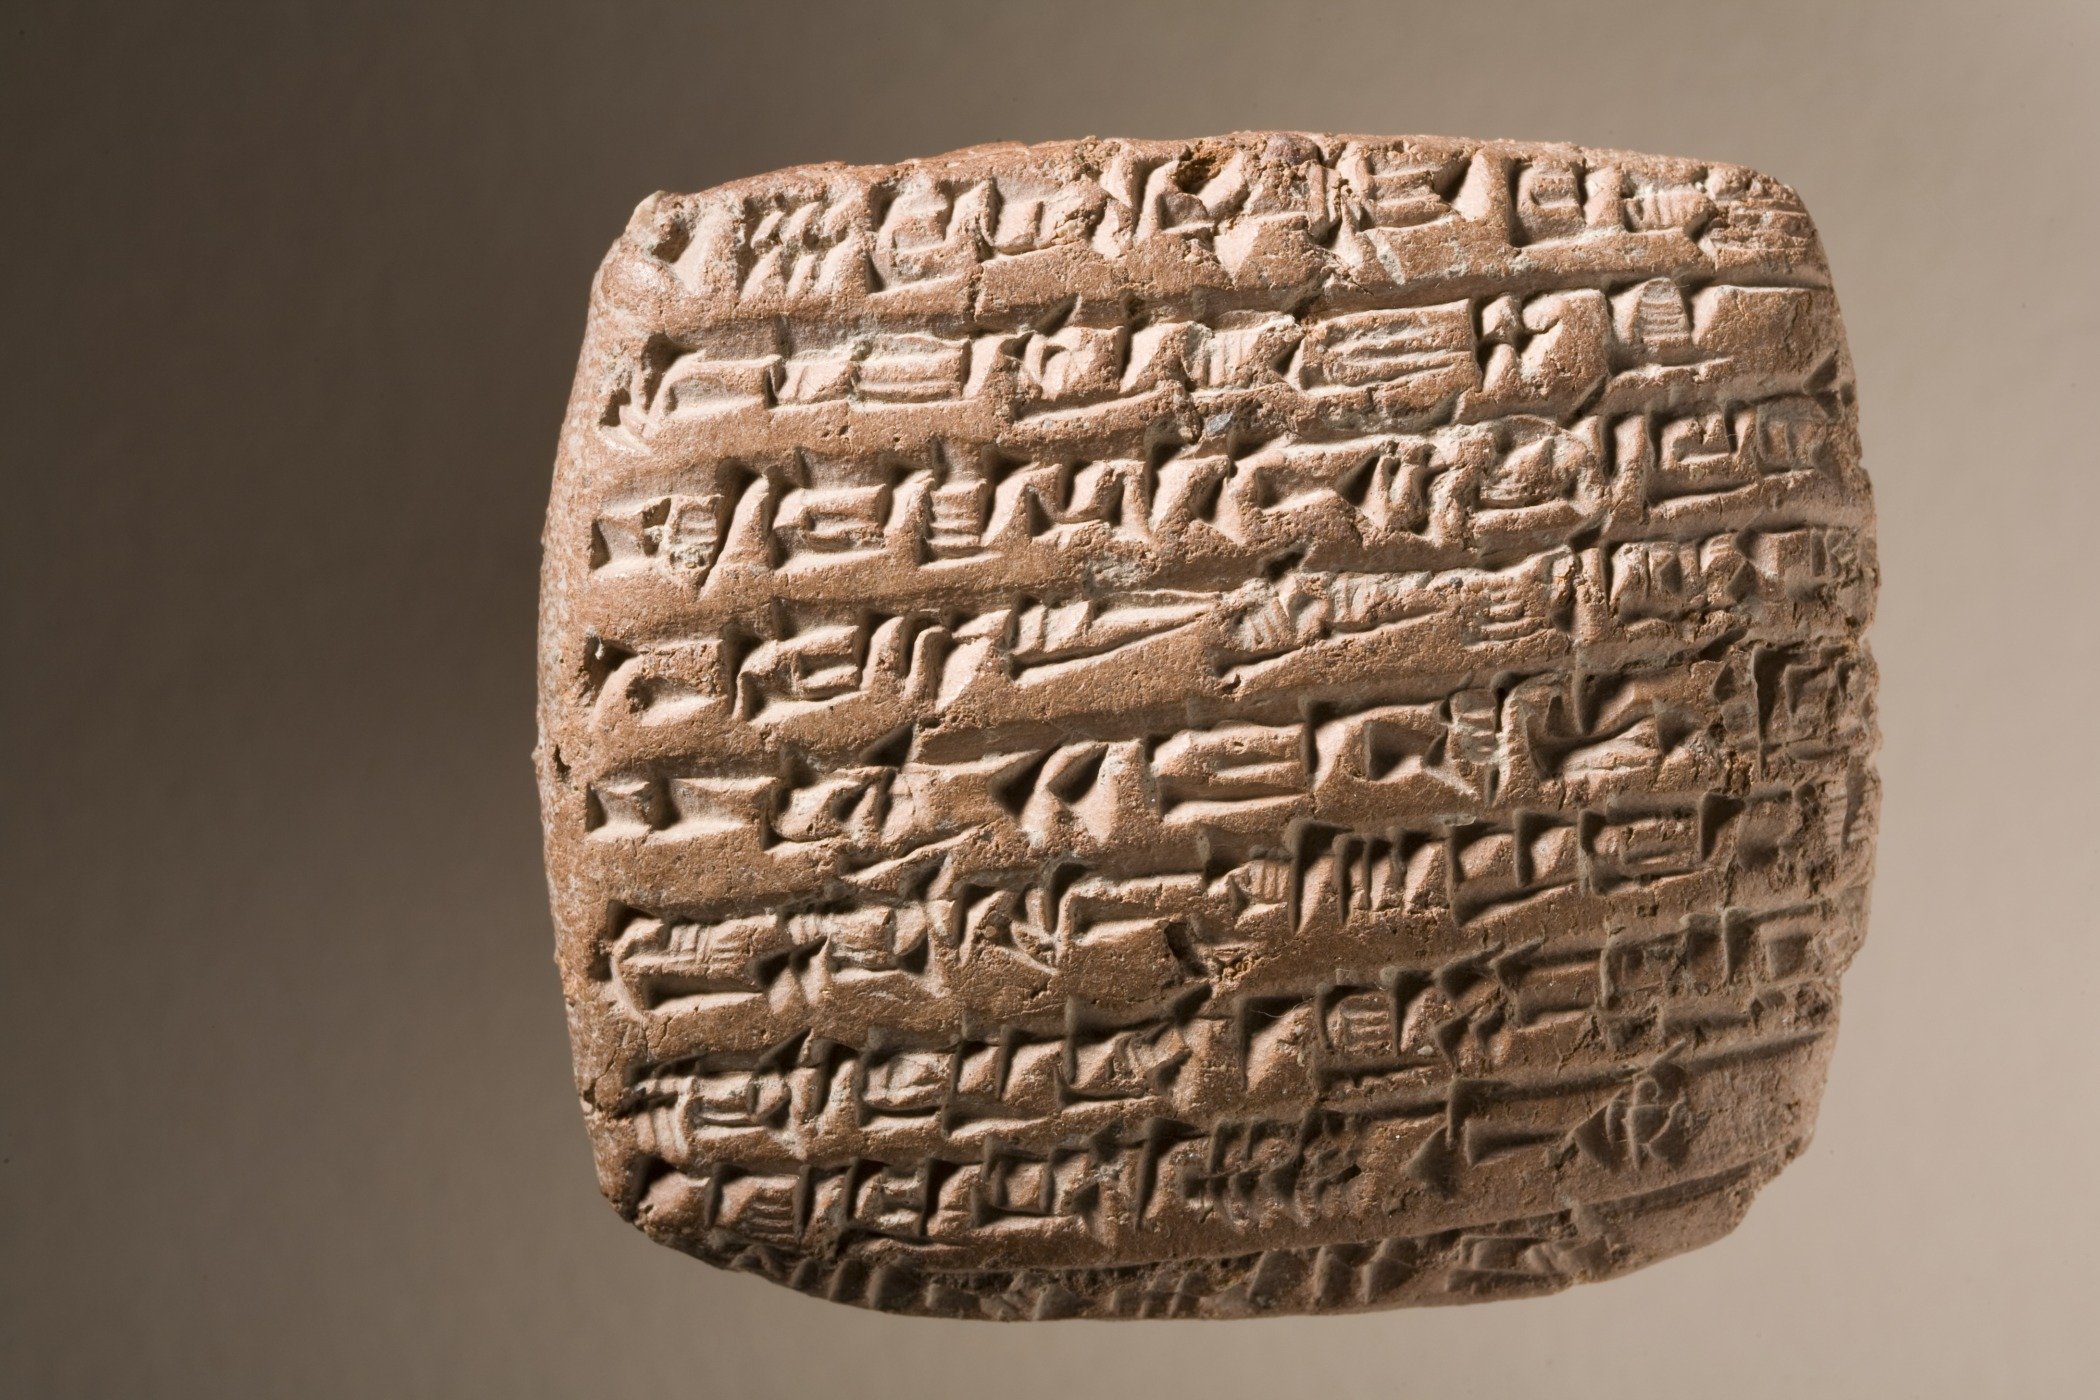 dating cuneiform tablets Digital preservation of ancient cuneiform tablets using 3d-scanning  date of  conference: 6-10 oct 2003 date added to ieee xplore: 27 october 2003.